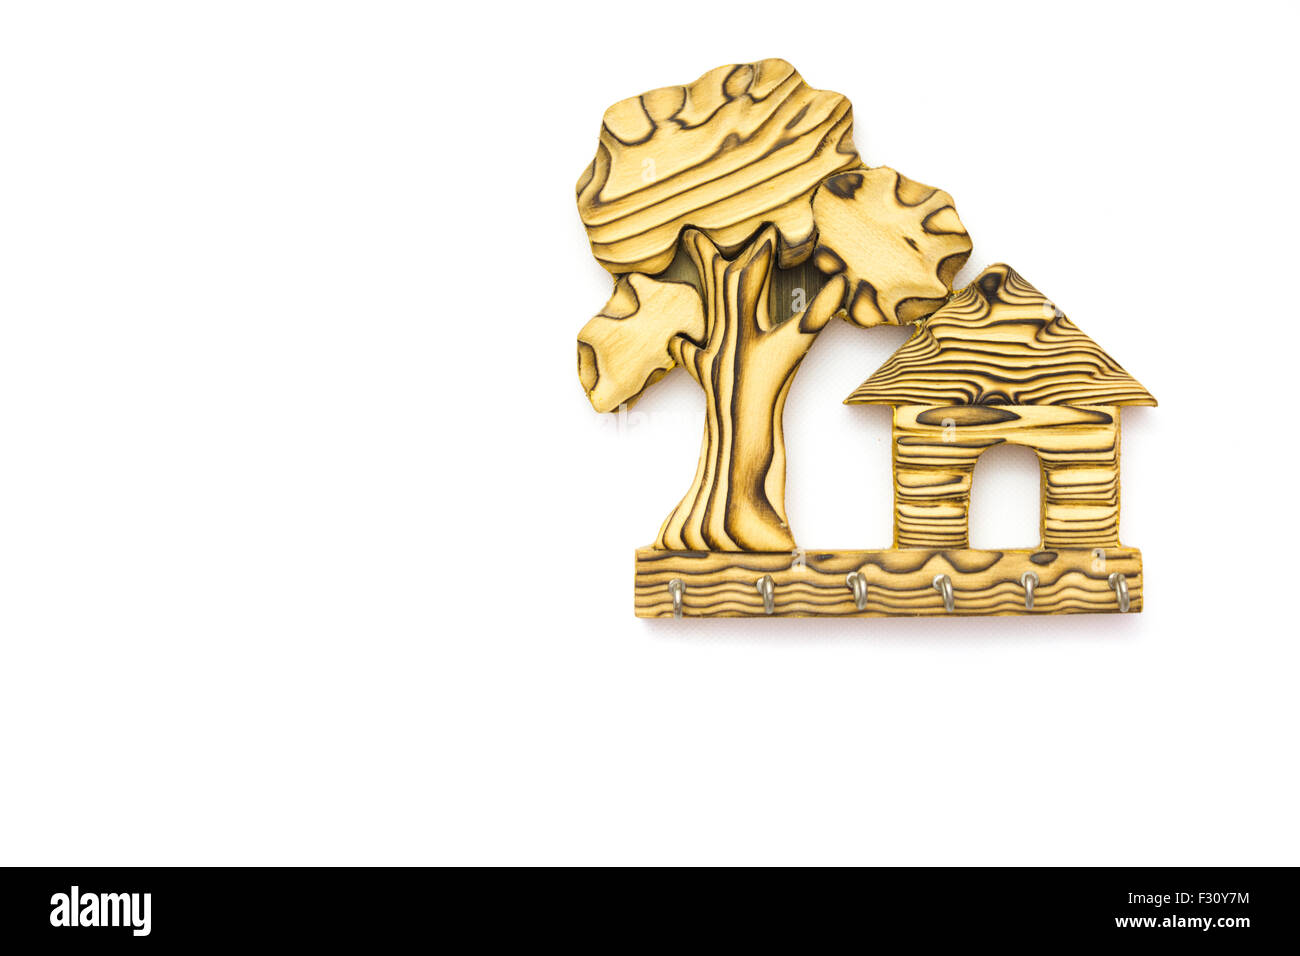 Wooden Wall Hanging Key Holder Home Shaped Stock Photo: 87917192 - Alamy